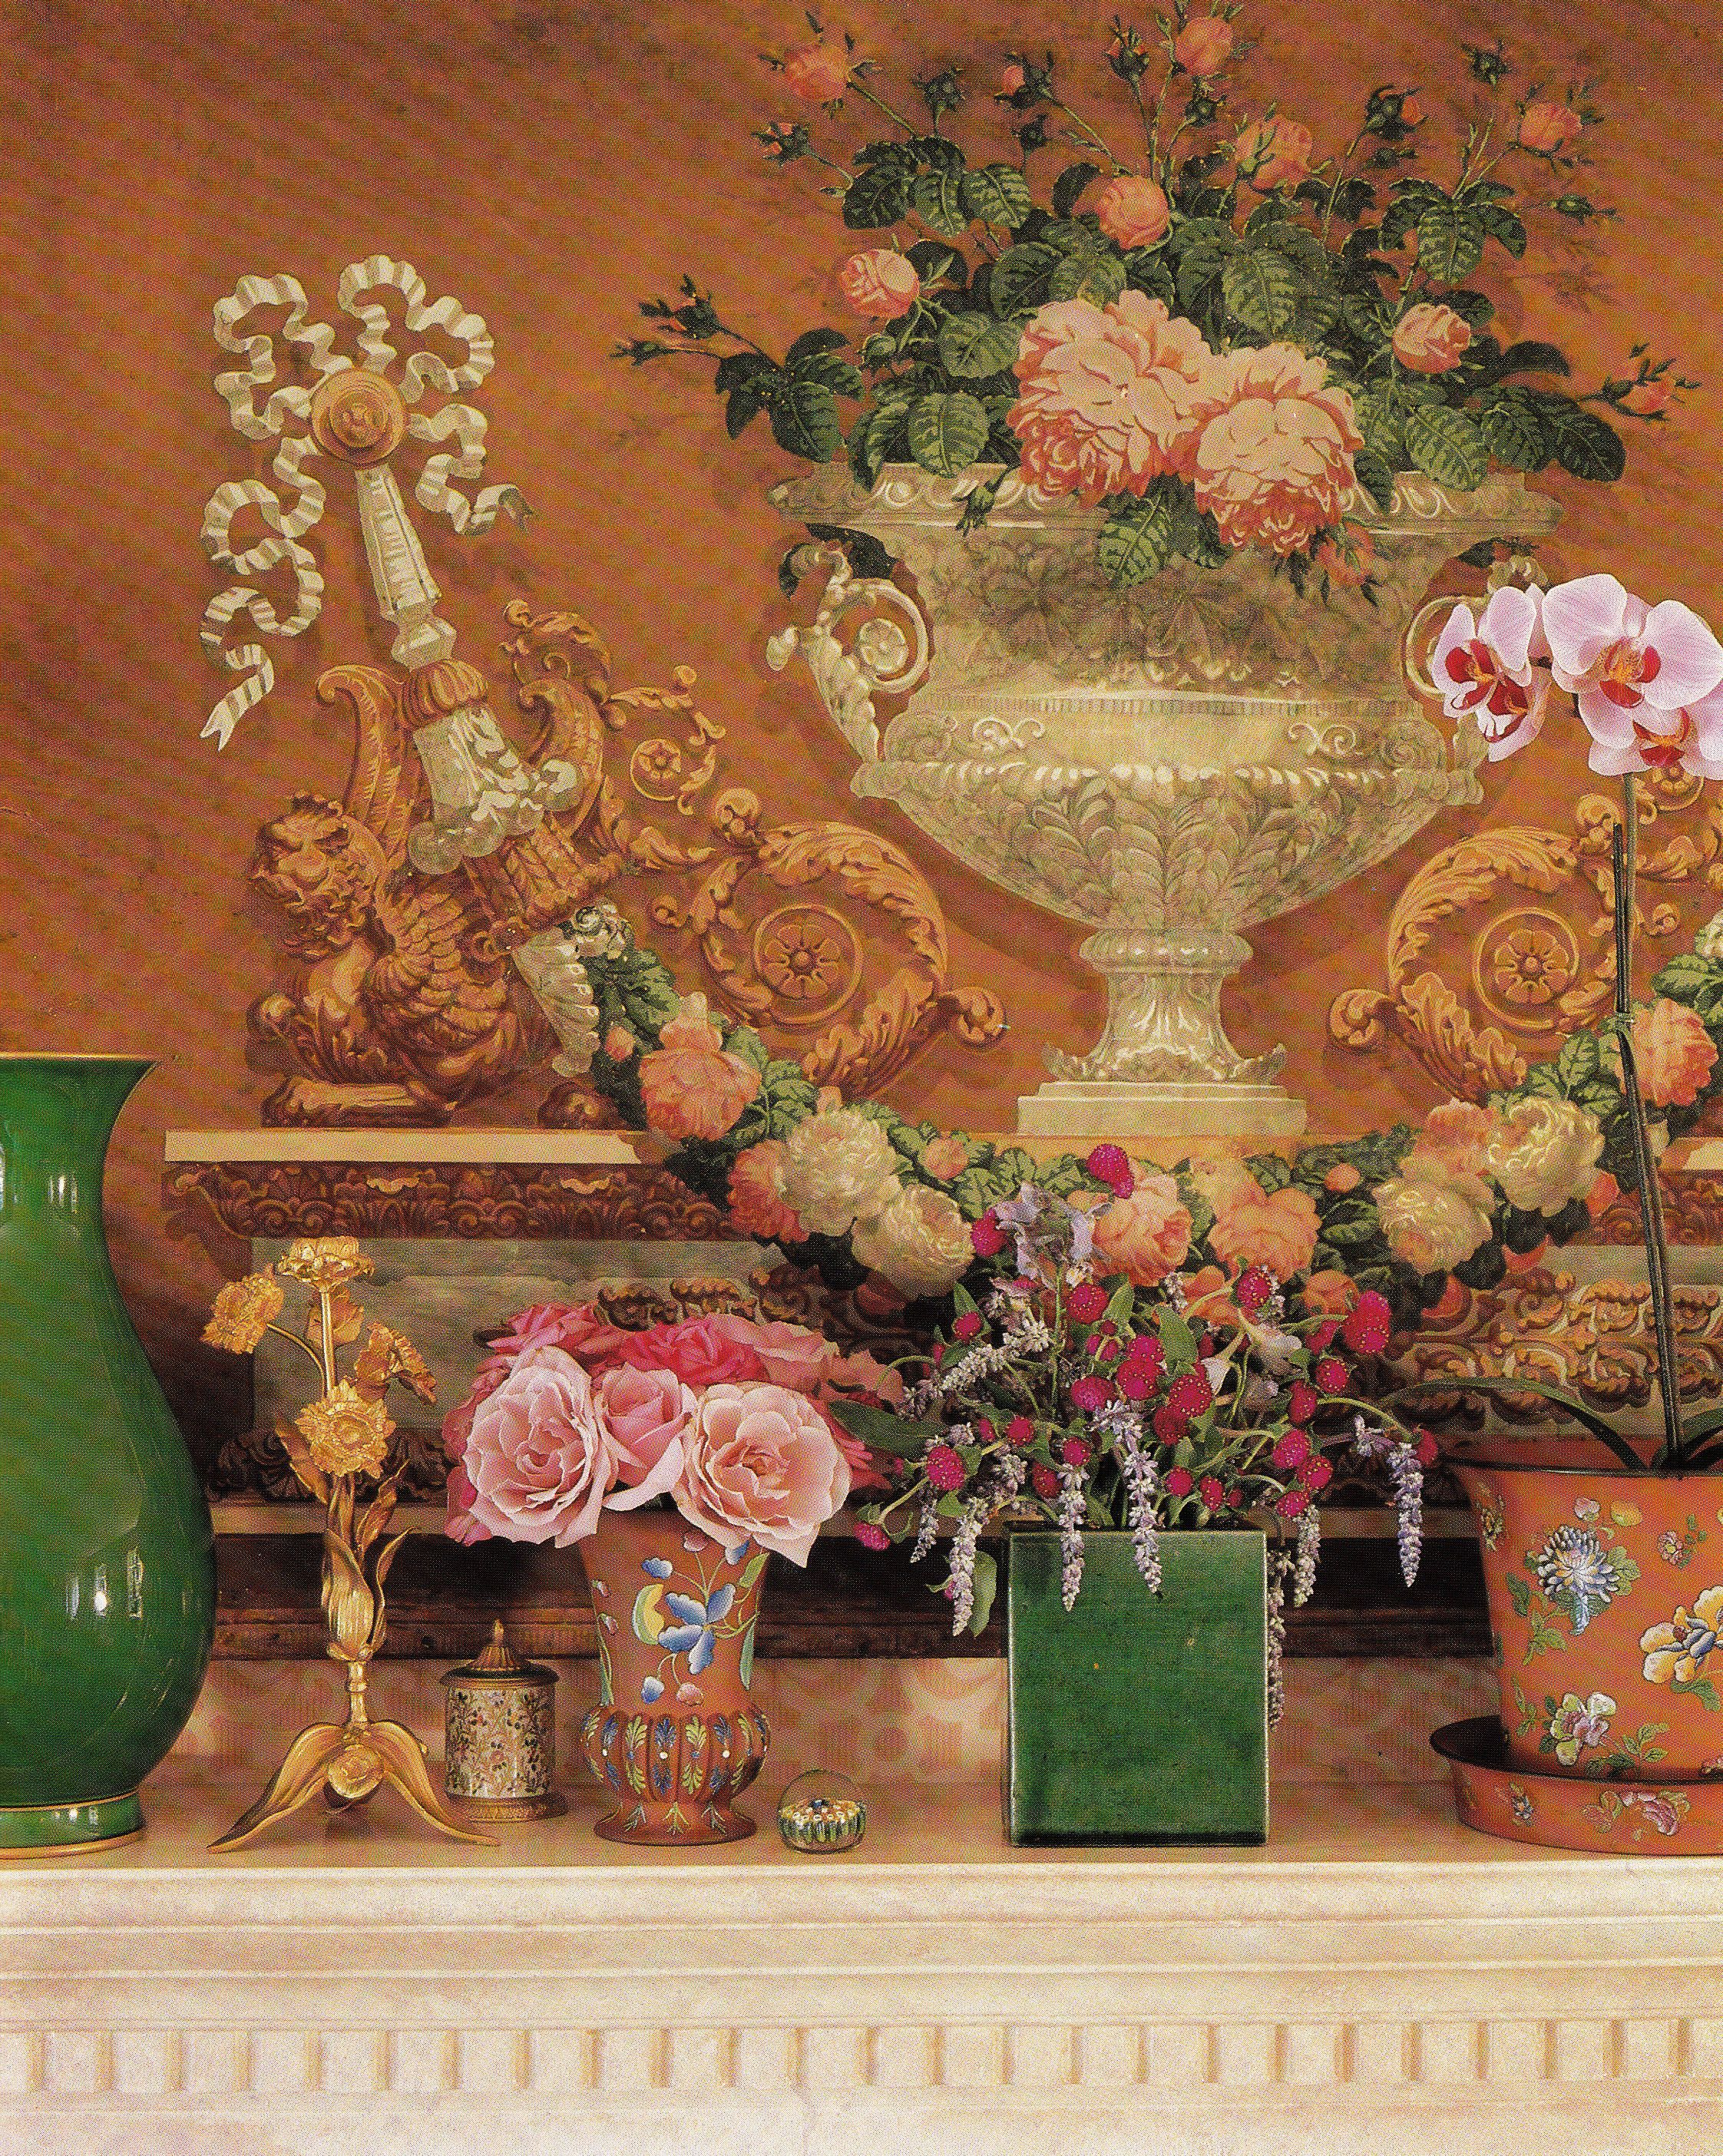 Wallpaper Designs For Living Room In India: Antique French Wallpaper